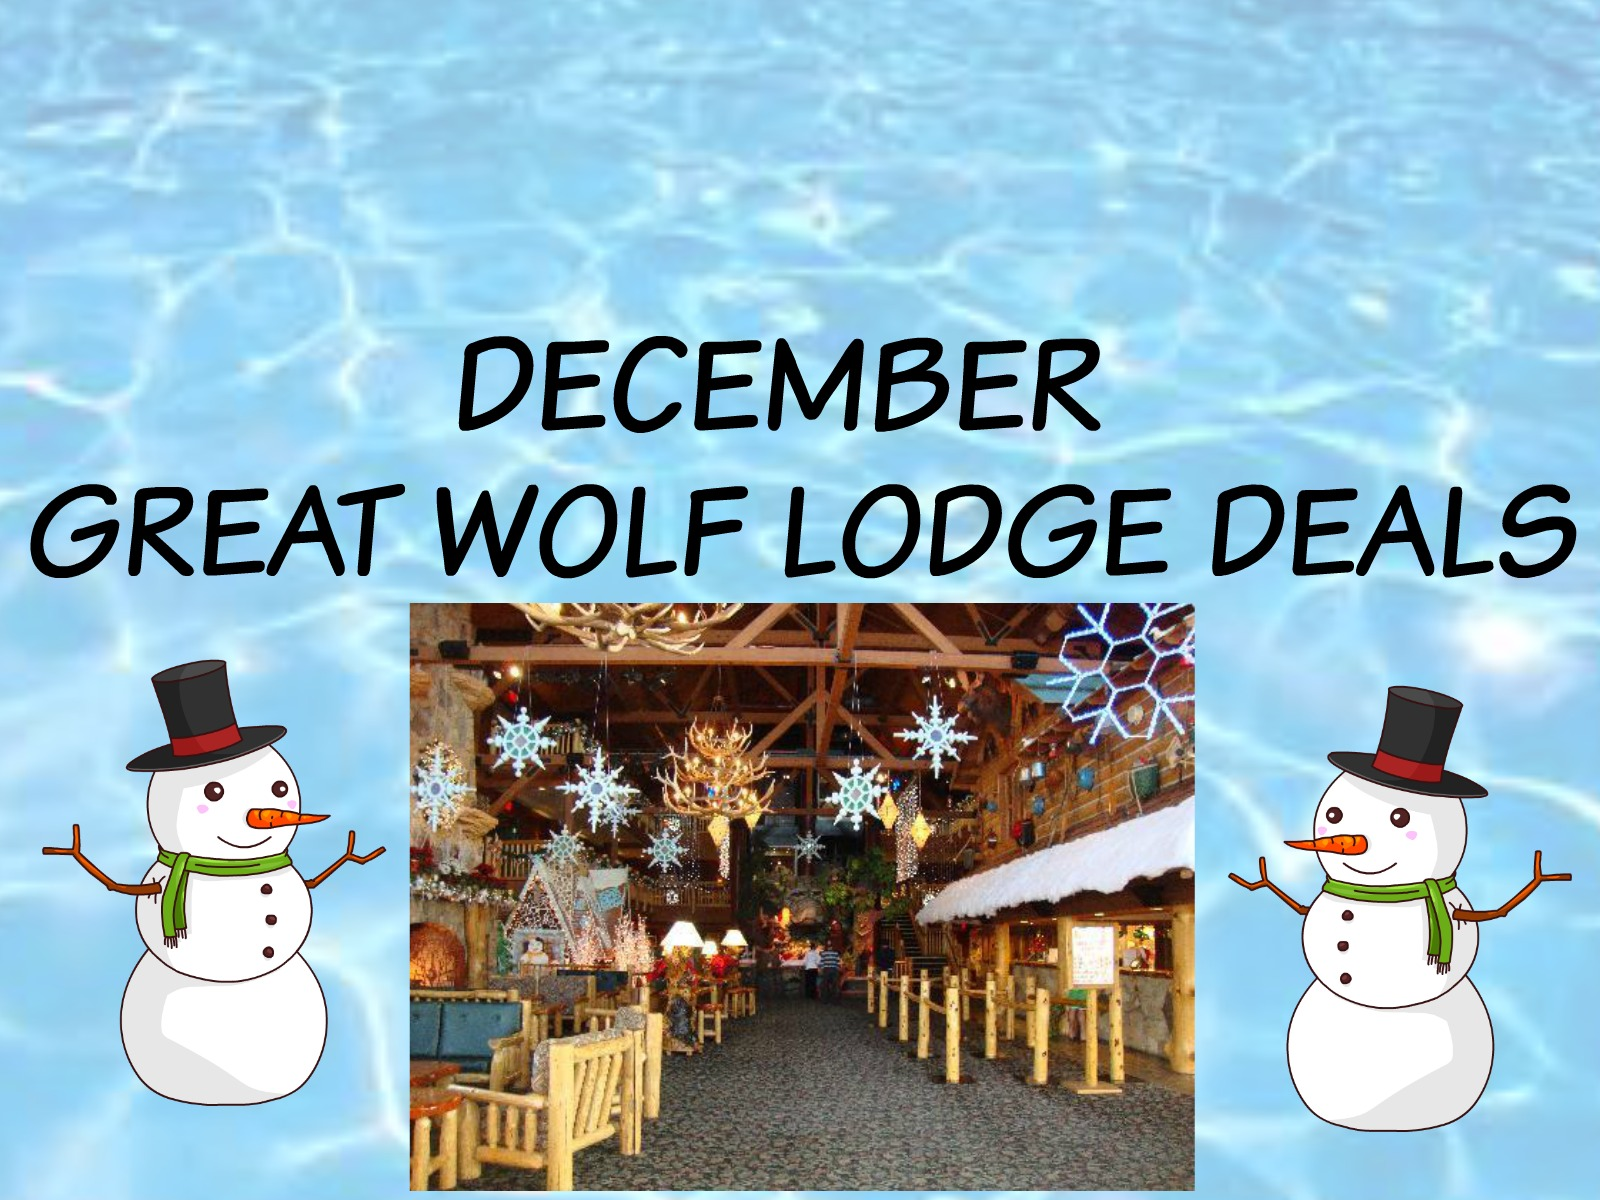 DECEMBER GREAT WOLF LODGE DEALS